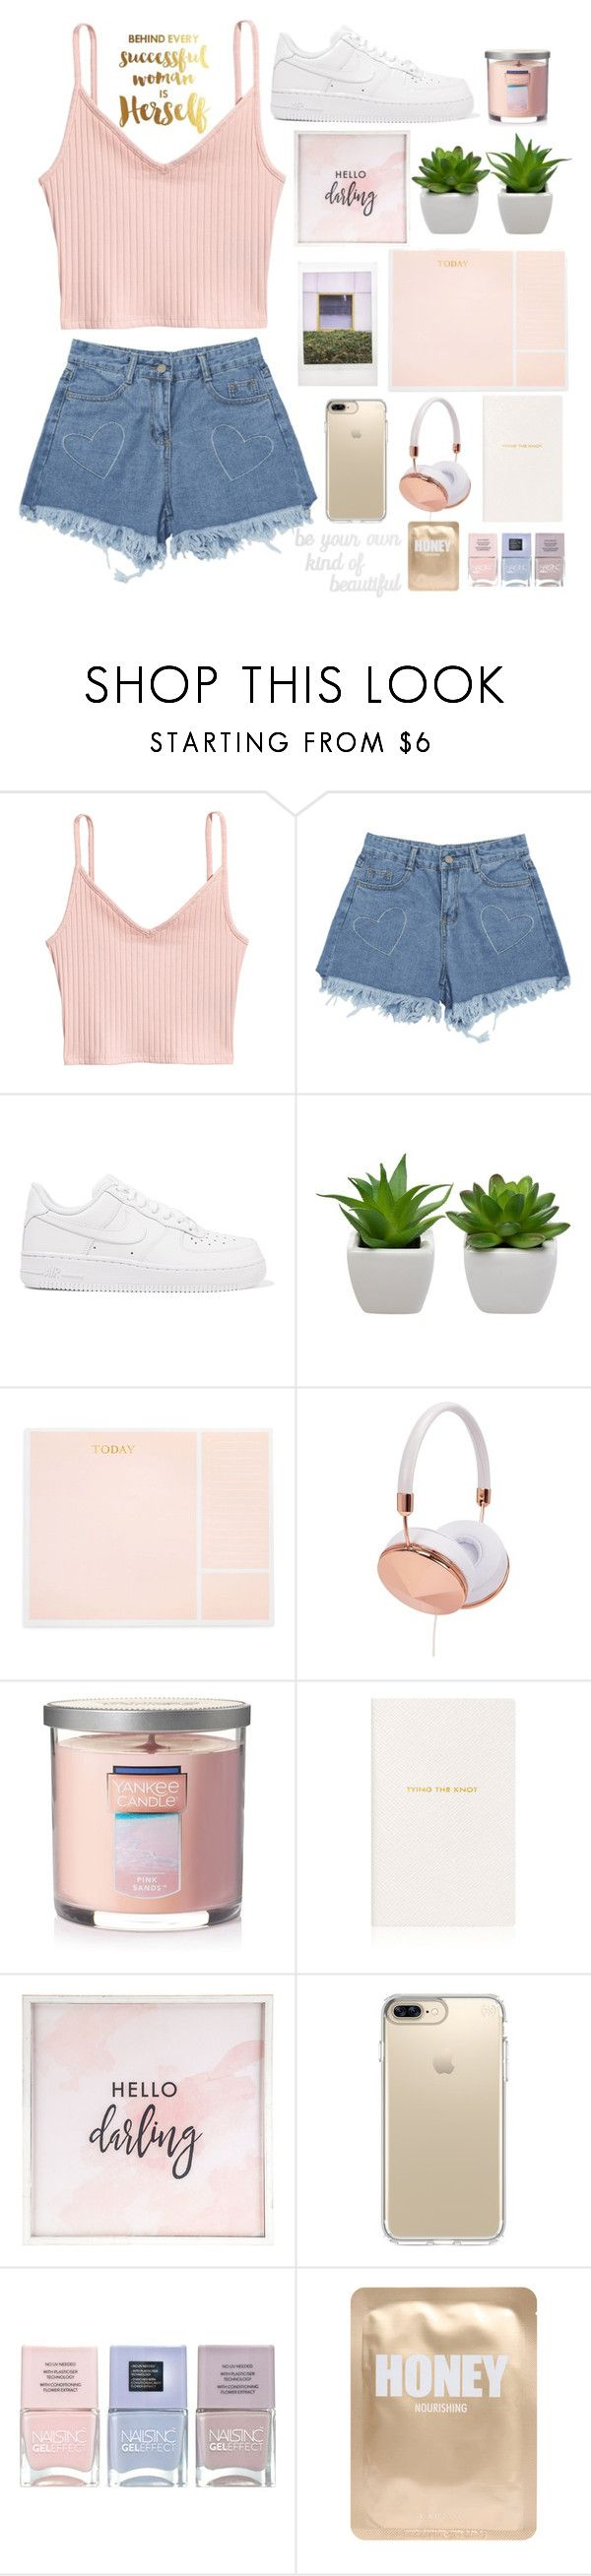 """""""🌸details"""" by ecemaydgn ❤ liked on Polyvore featuring NIKE, Sugar Paper, Frends, Yankee Candle, Smythson, Hello Darling, Speck, Nails Inc., Lapcos and PBteen"""